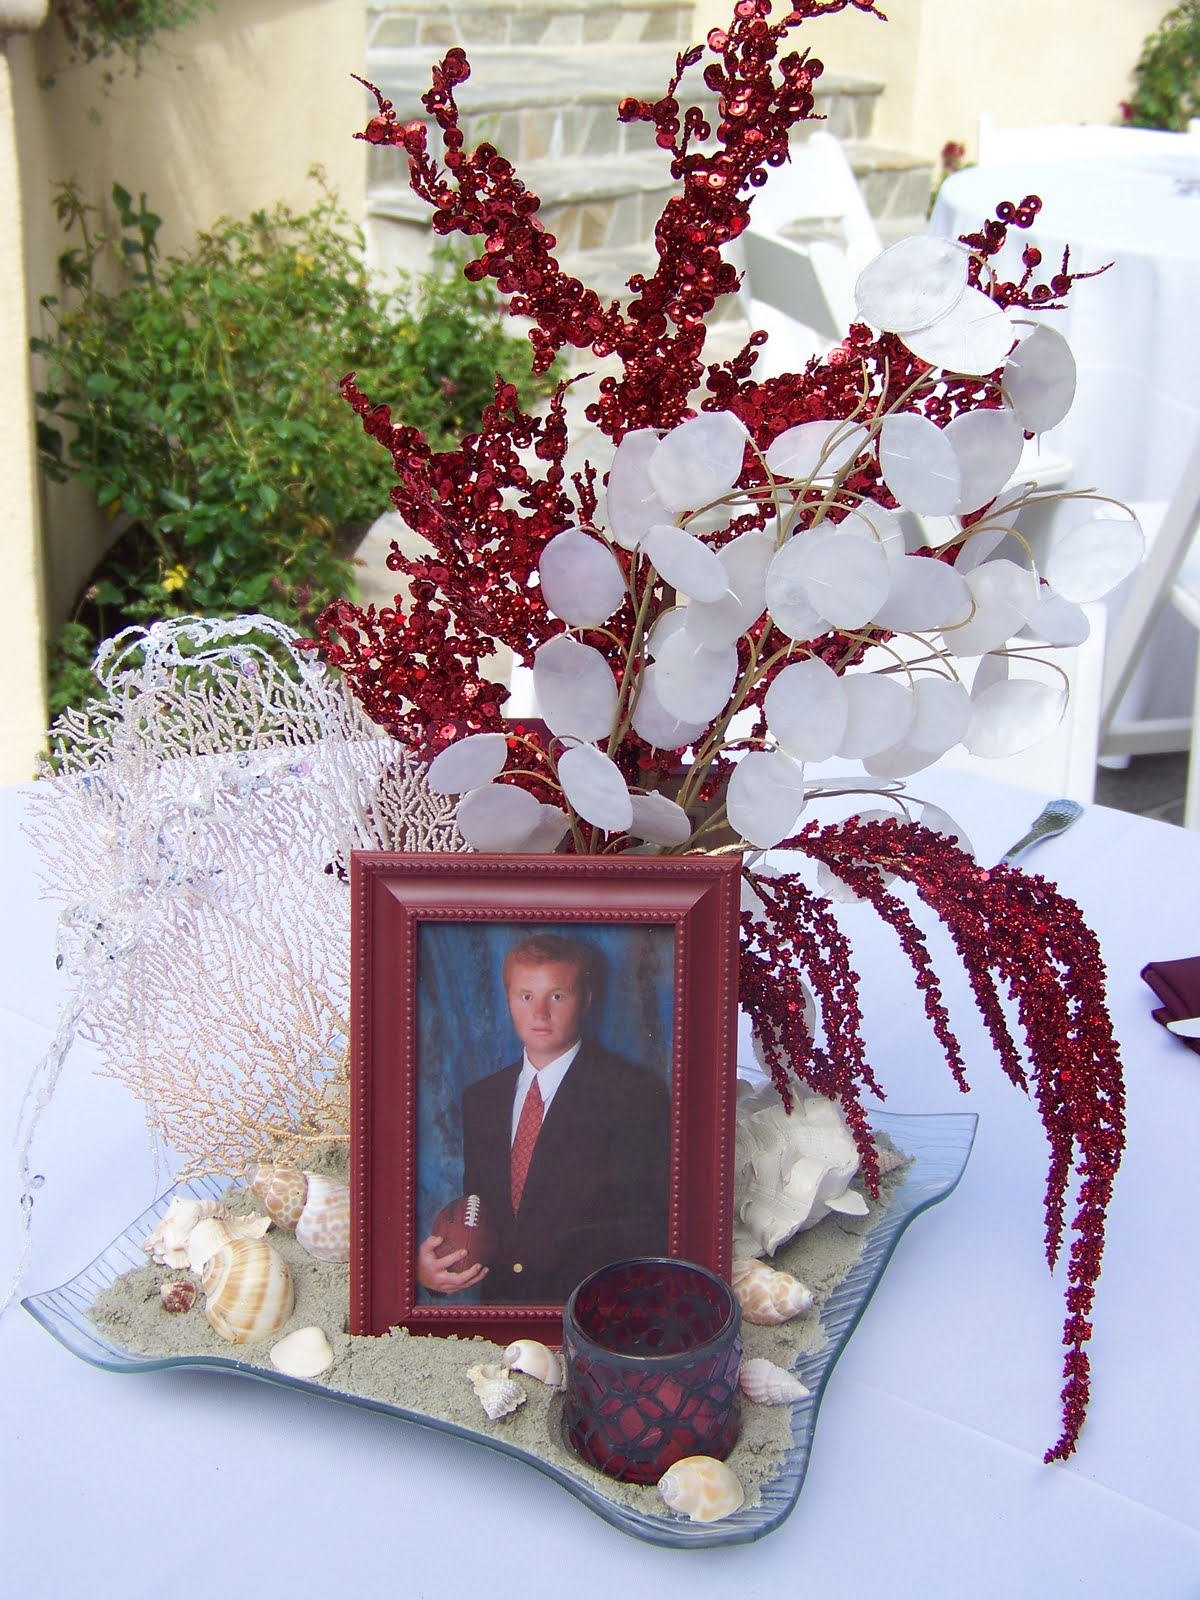 Plumeria cake studio graduation party centerpieces